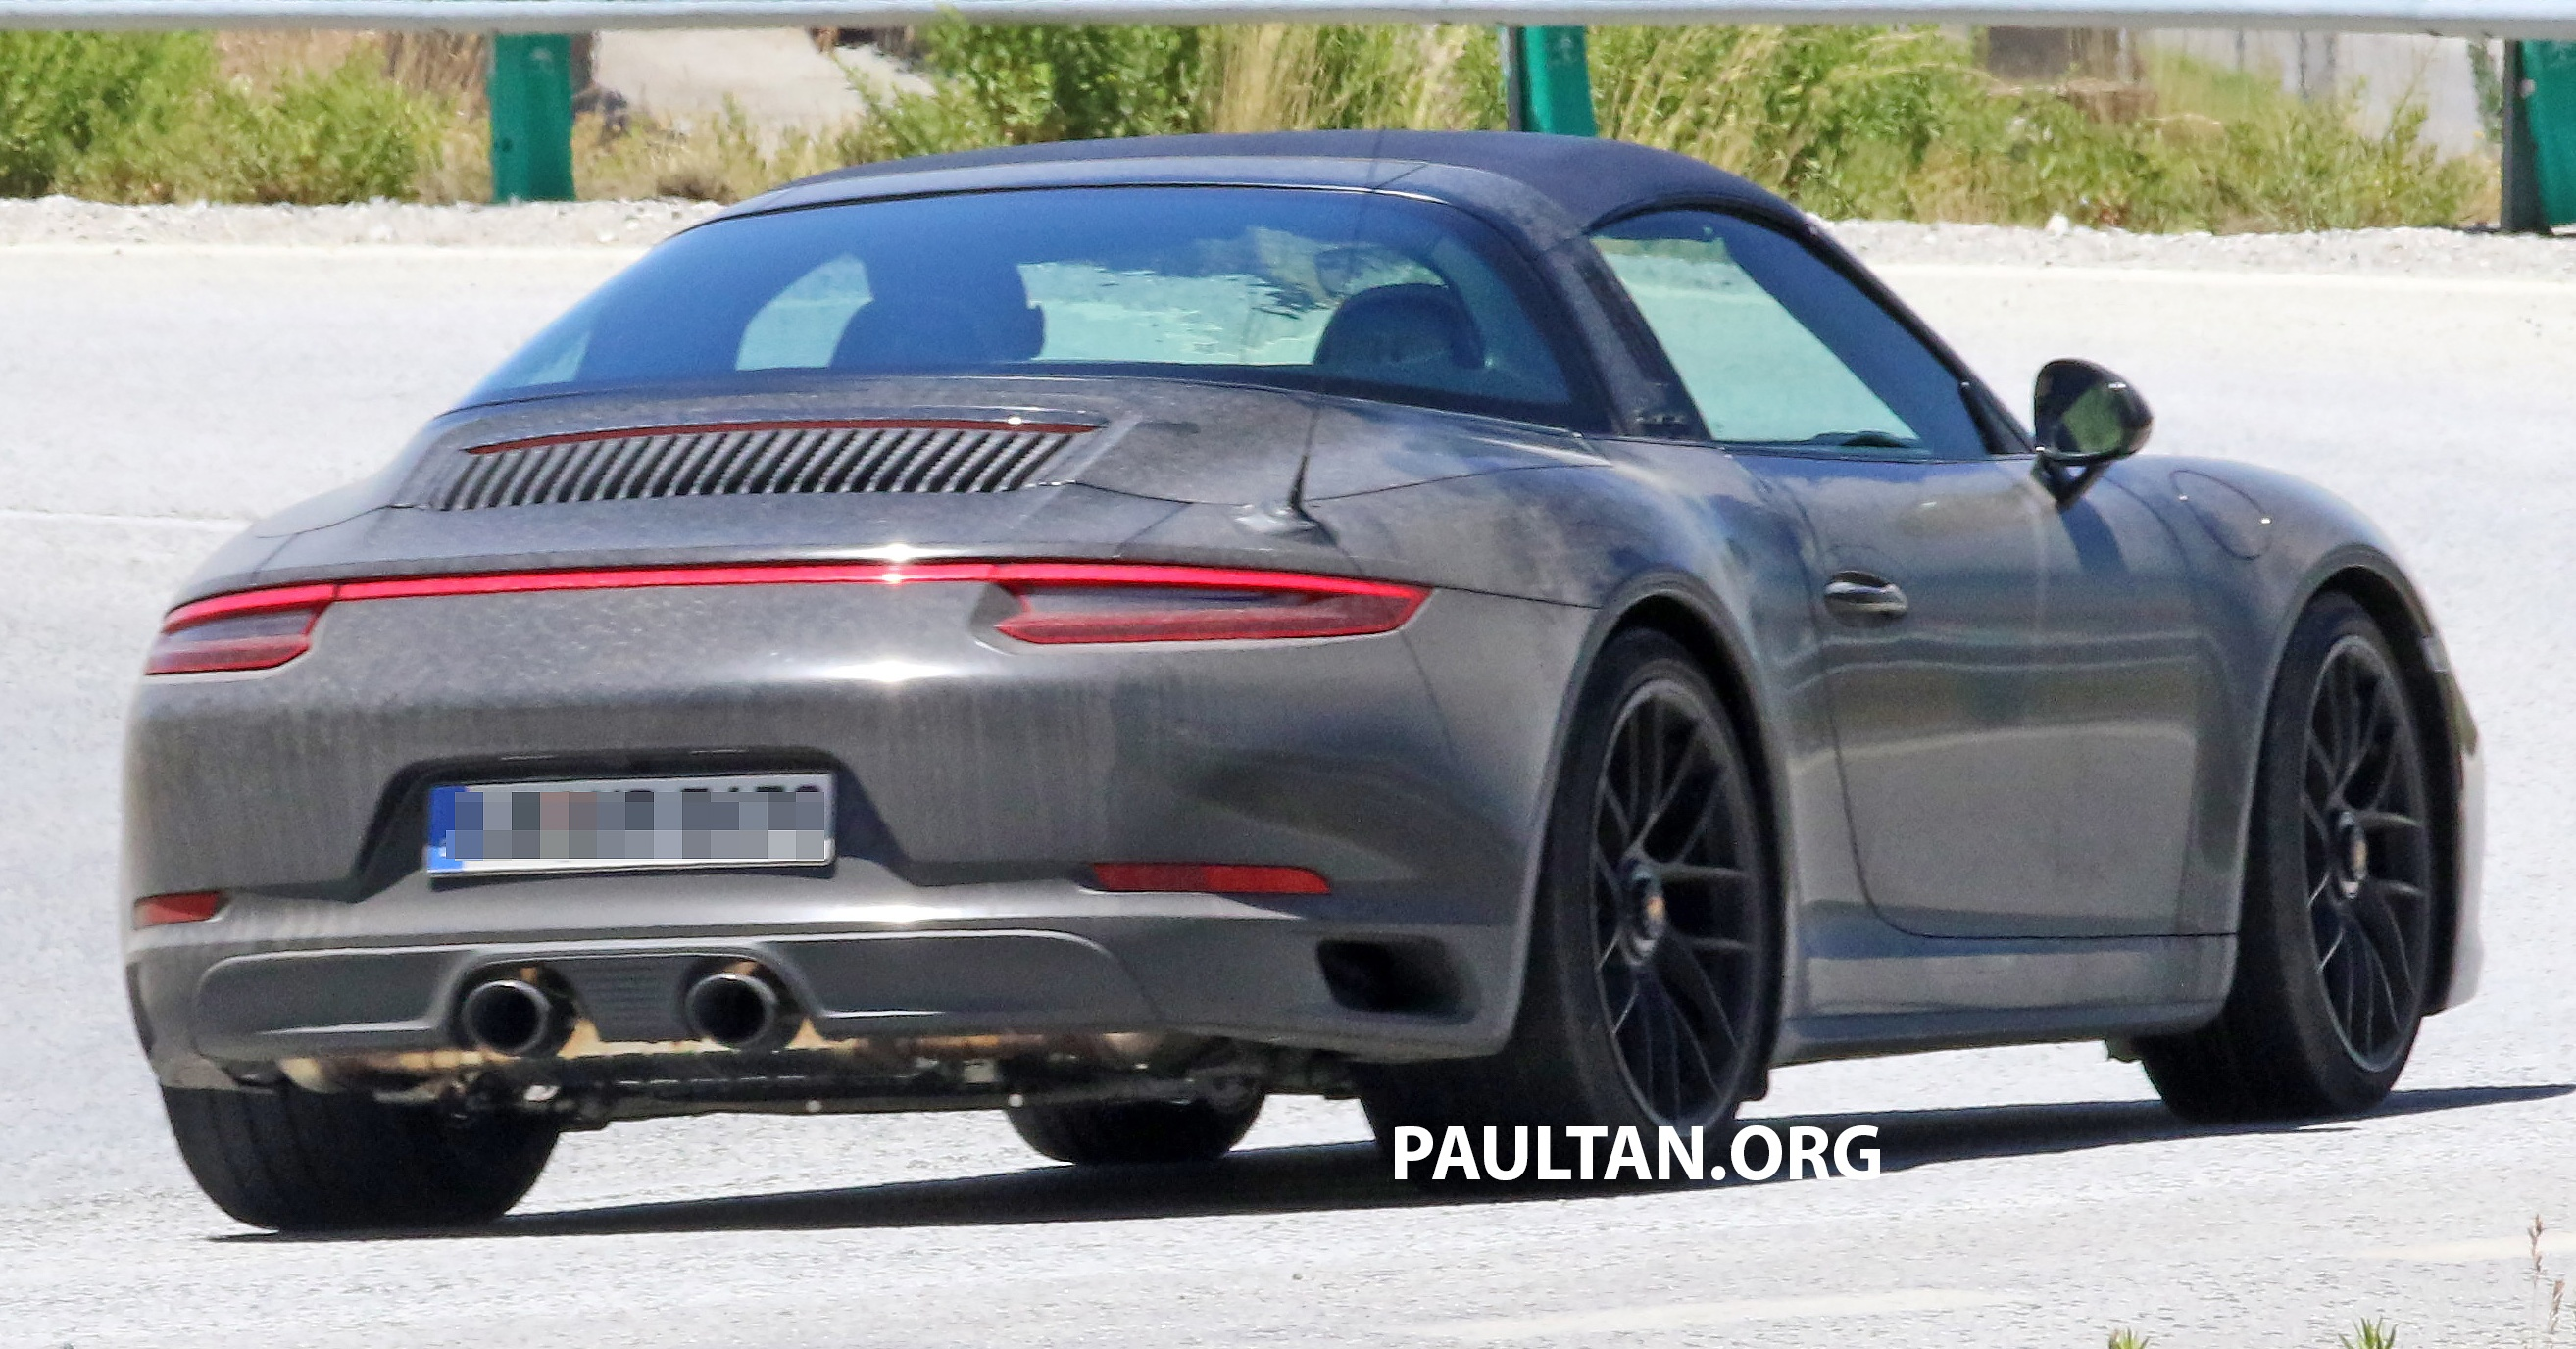 Spyshots New Porsche 911 Targa Gts Seen Testing Paul Tan